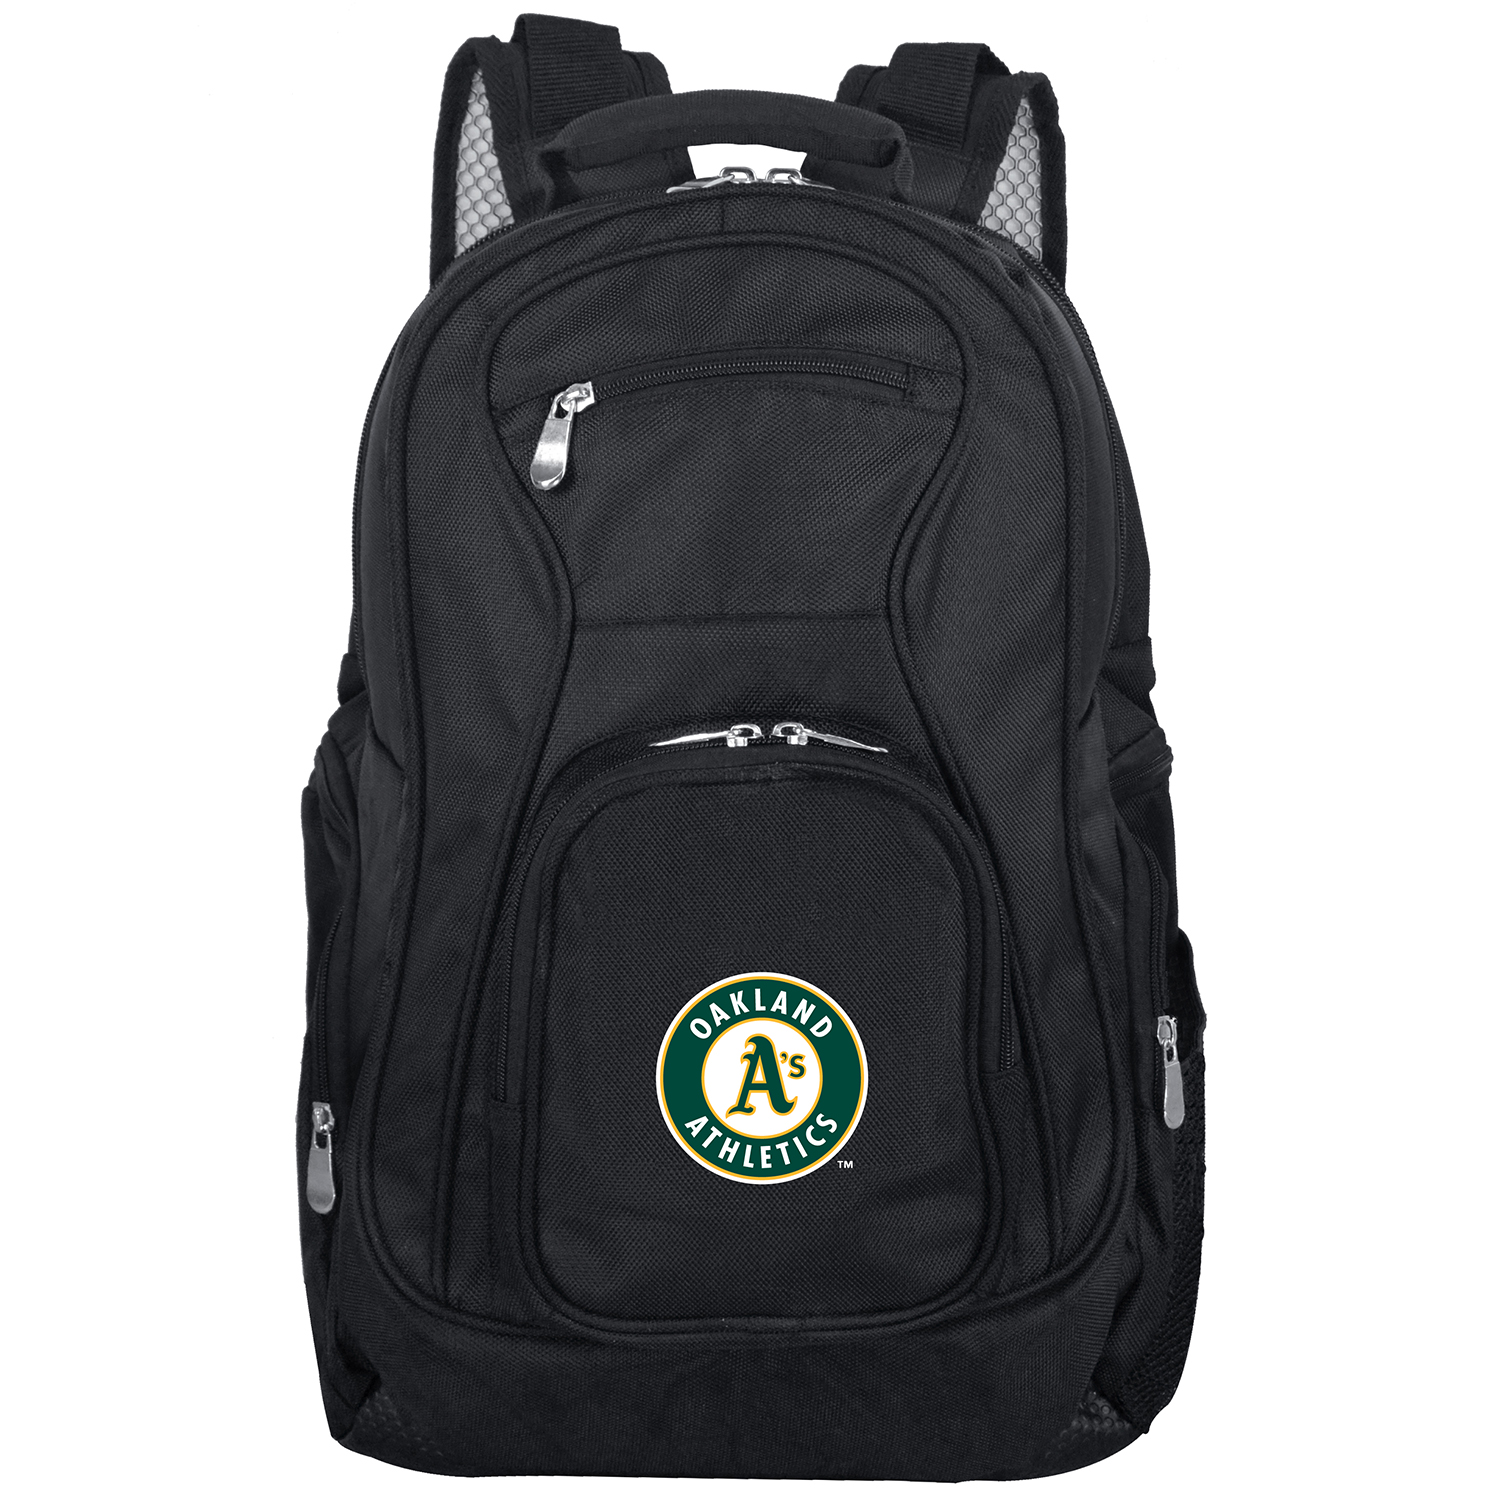 "Oakland Athletics 19"" Laptop Travel Backpack - Black - No Size"